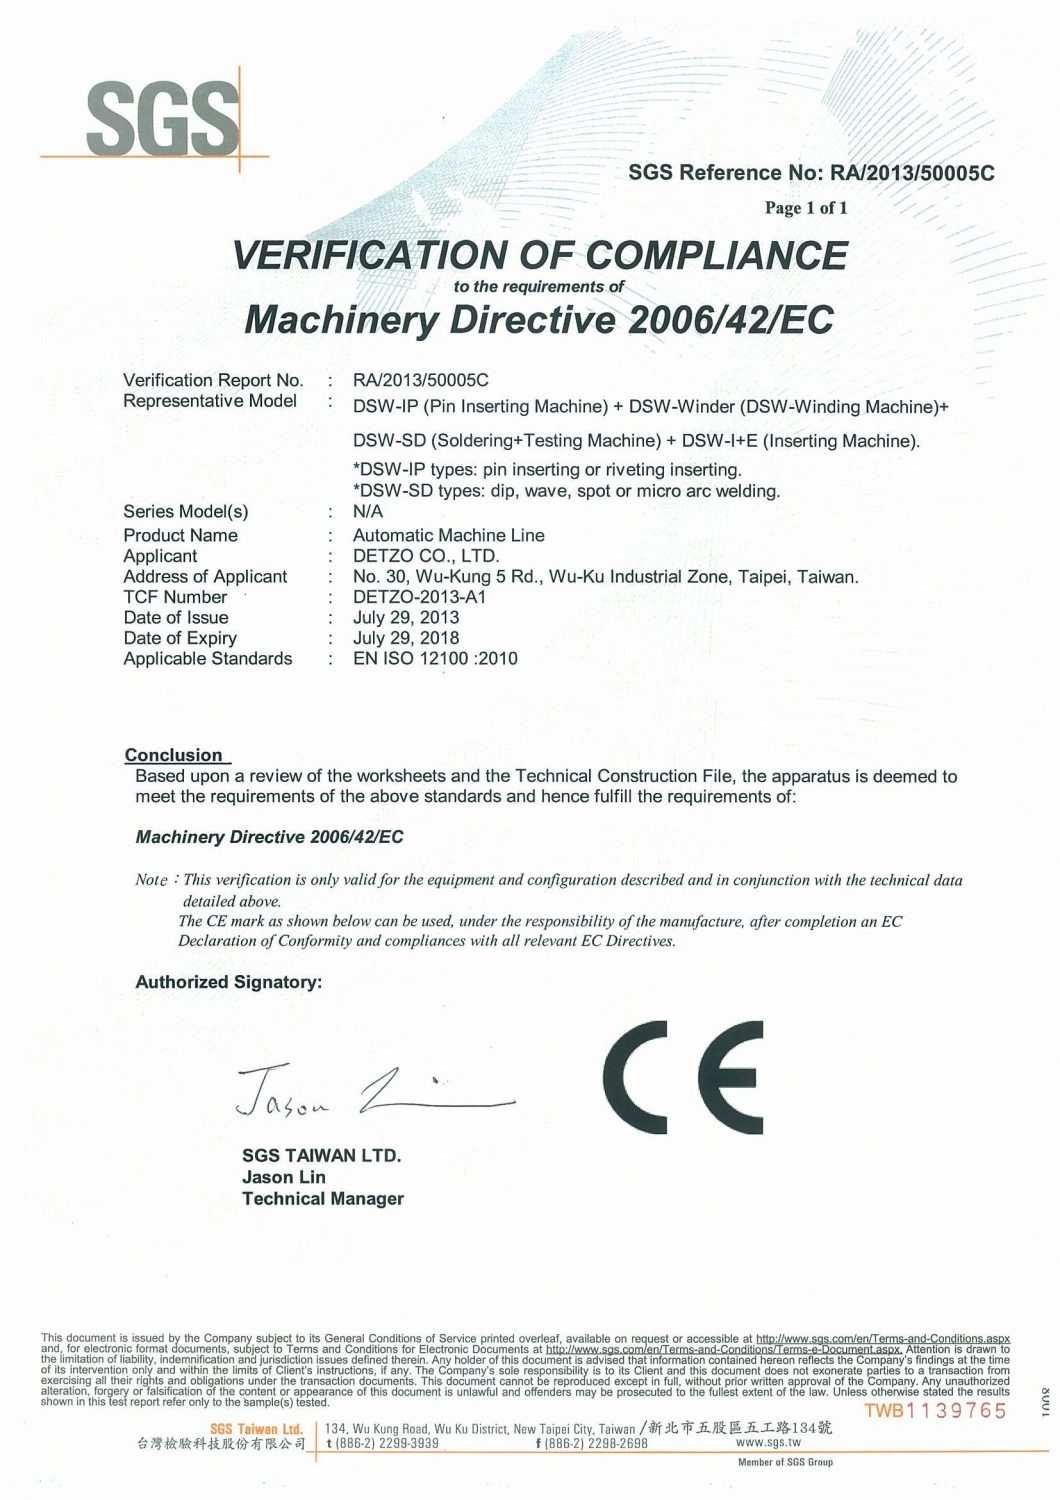 Ce certification sgs detzo co ltd last page 1betcityfo Choice Image